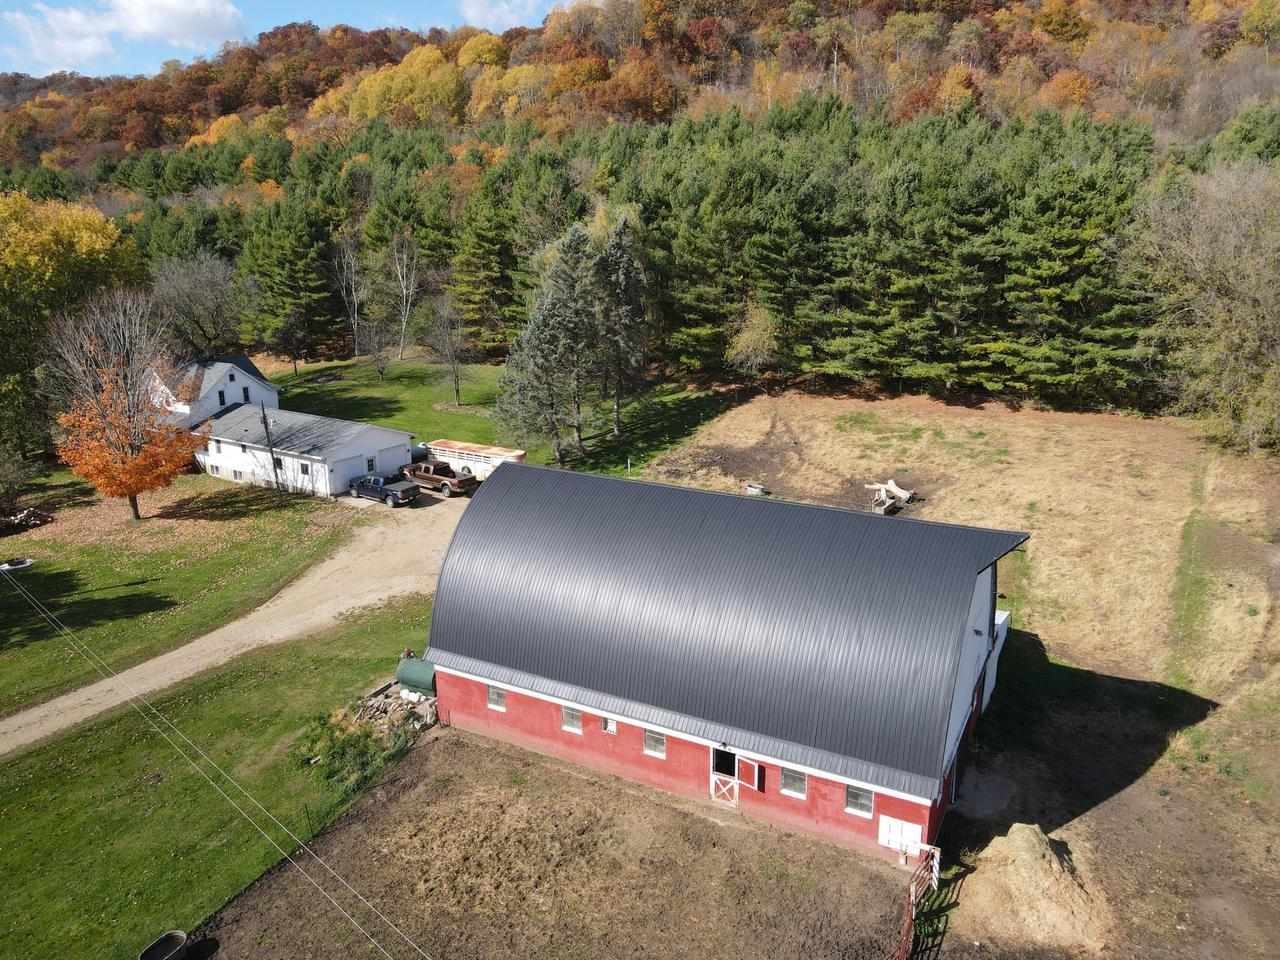 Looking for a hobby farm with a Prime location in a great valley setting? This could be the one and it is right in the heart of Buffalo Cty Big Buck Country and features a 5+ bdrm home with a round roof barn along with15 acres of woods & pasture. The spring feed creek running through the property makes it the ideal setup for horses or cattle. Some updates within the last 4 years include; Home Reinsulated, Furnace and C/A, Water Heater, Bathroom Fixtures, Barn Roof and more! Check it out today.